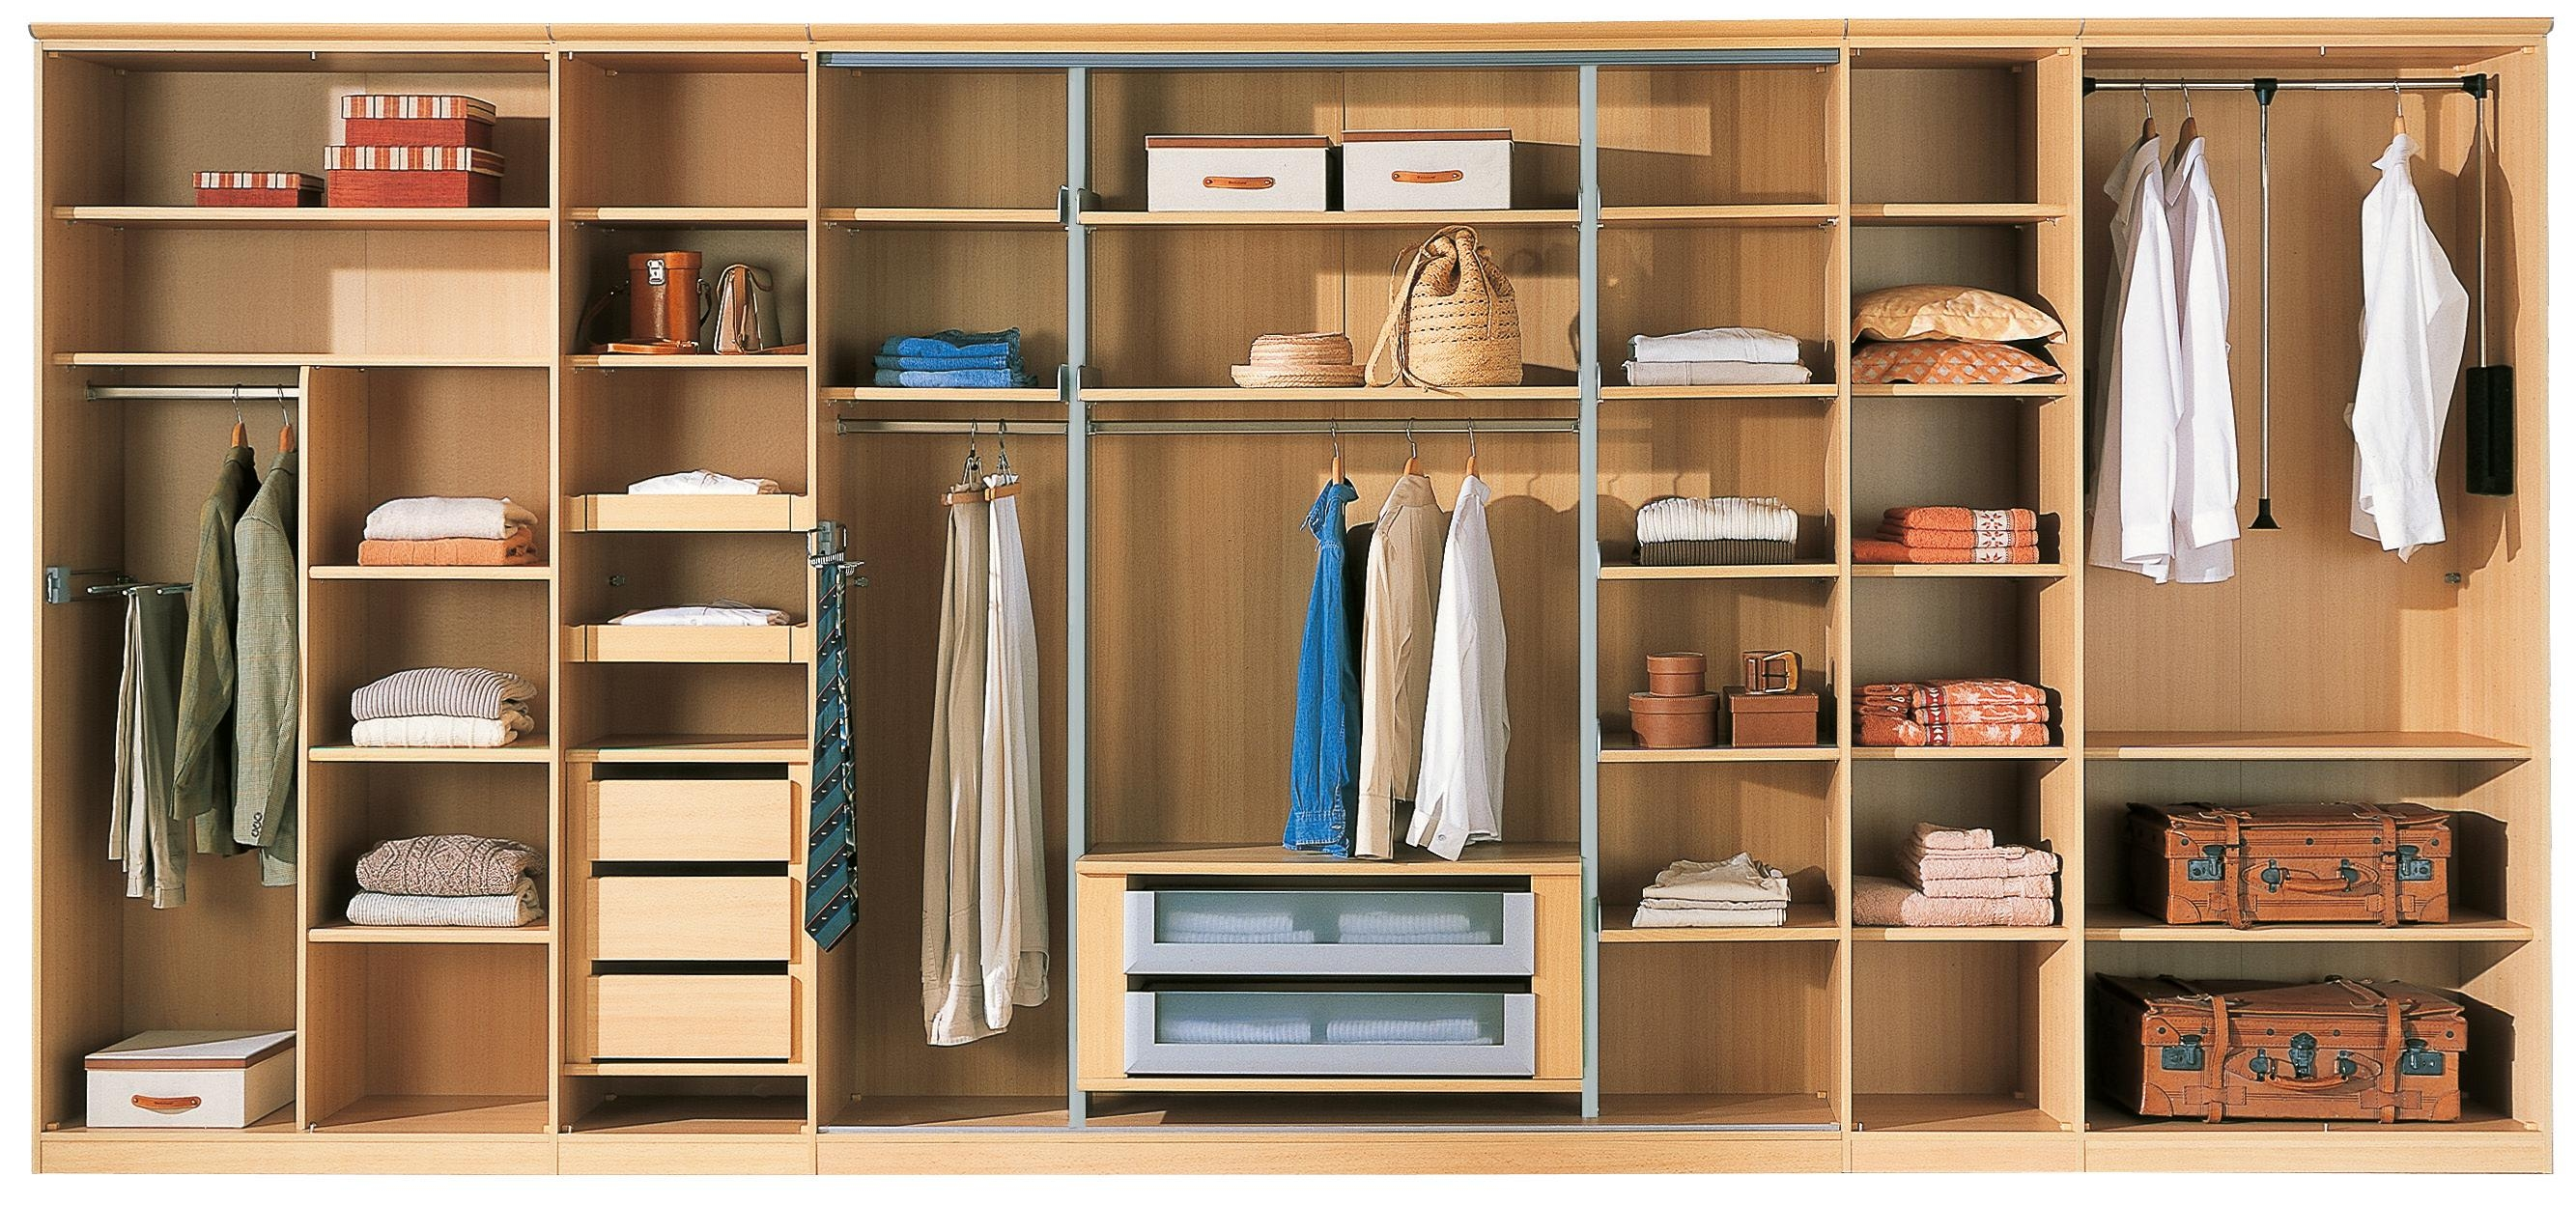 Bedroom Wardrobe Interior Shelves Design Ideas 2017 2018 Pertaining To Wardrobes With Shelves And Drawers (Image 4 of 15)